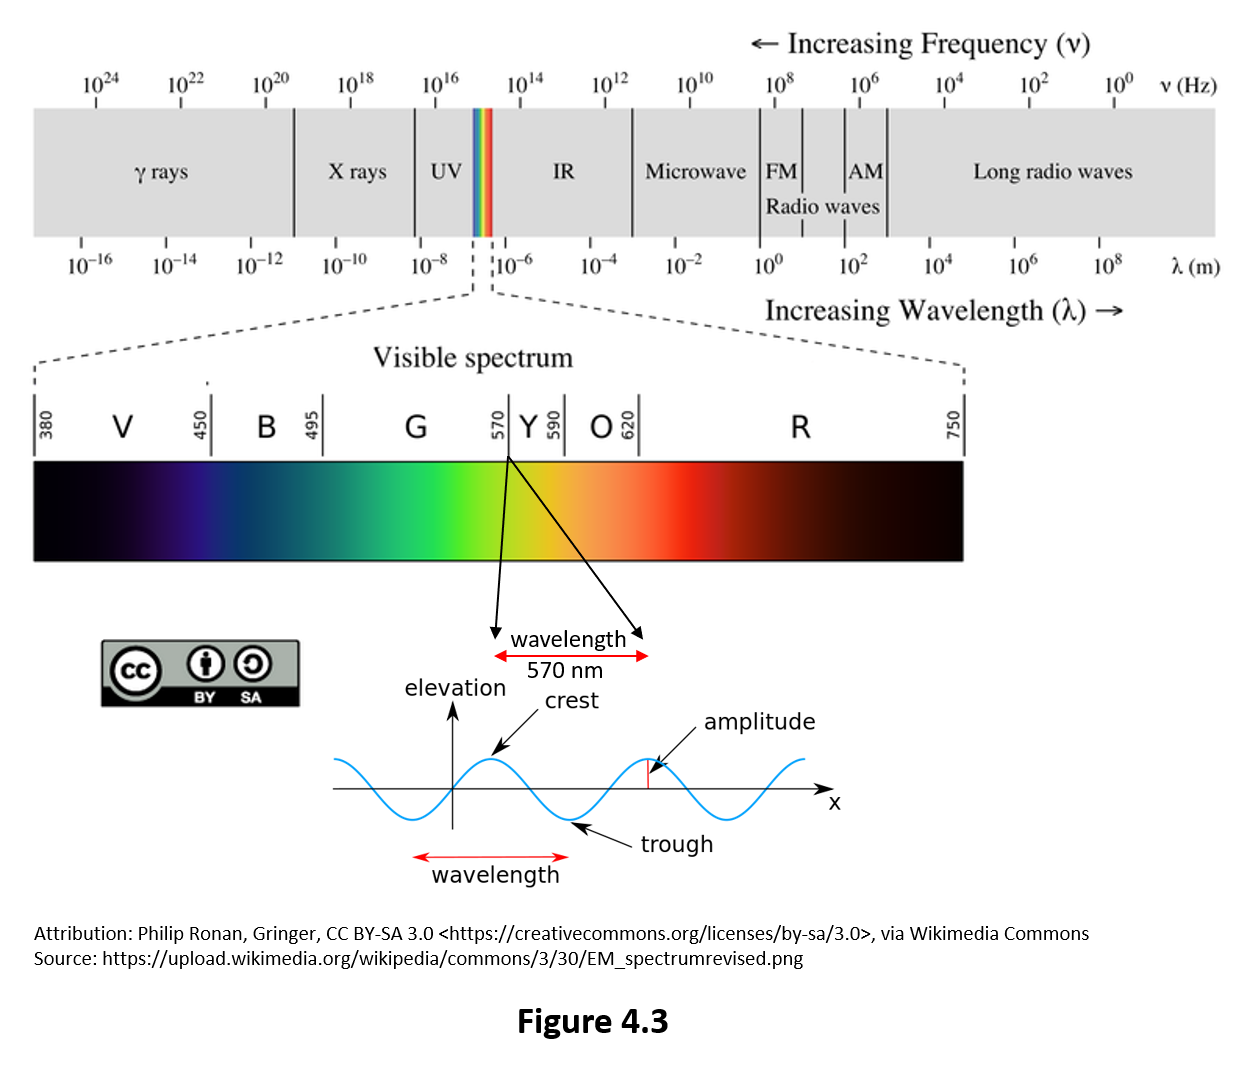 Figure 4.3 shows the electromagnetic spectrum. Visible light is a small fraction of this spectrum. Wavelengths in the visible spectrum range from 380nm to 750nm.